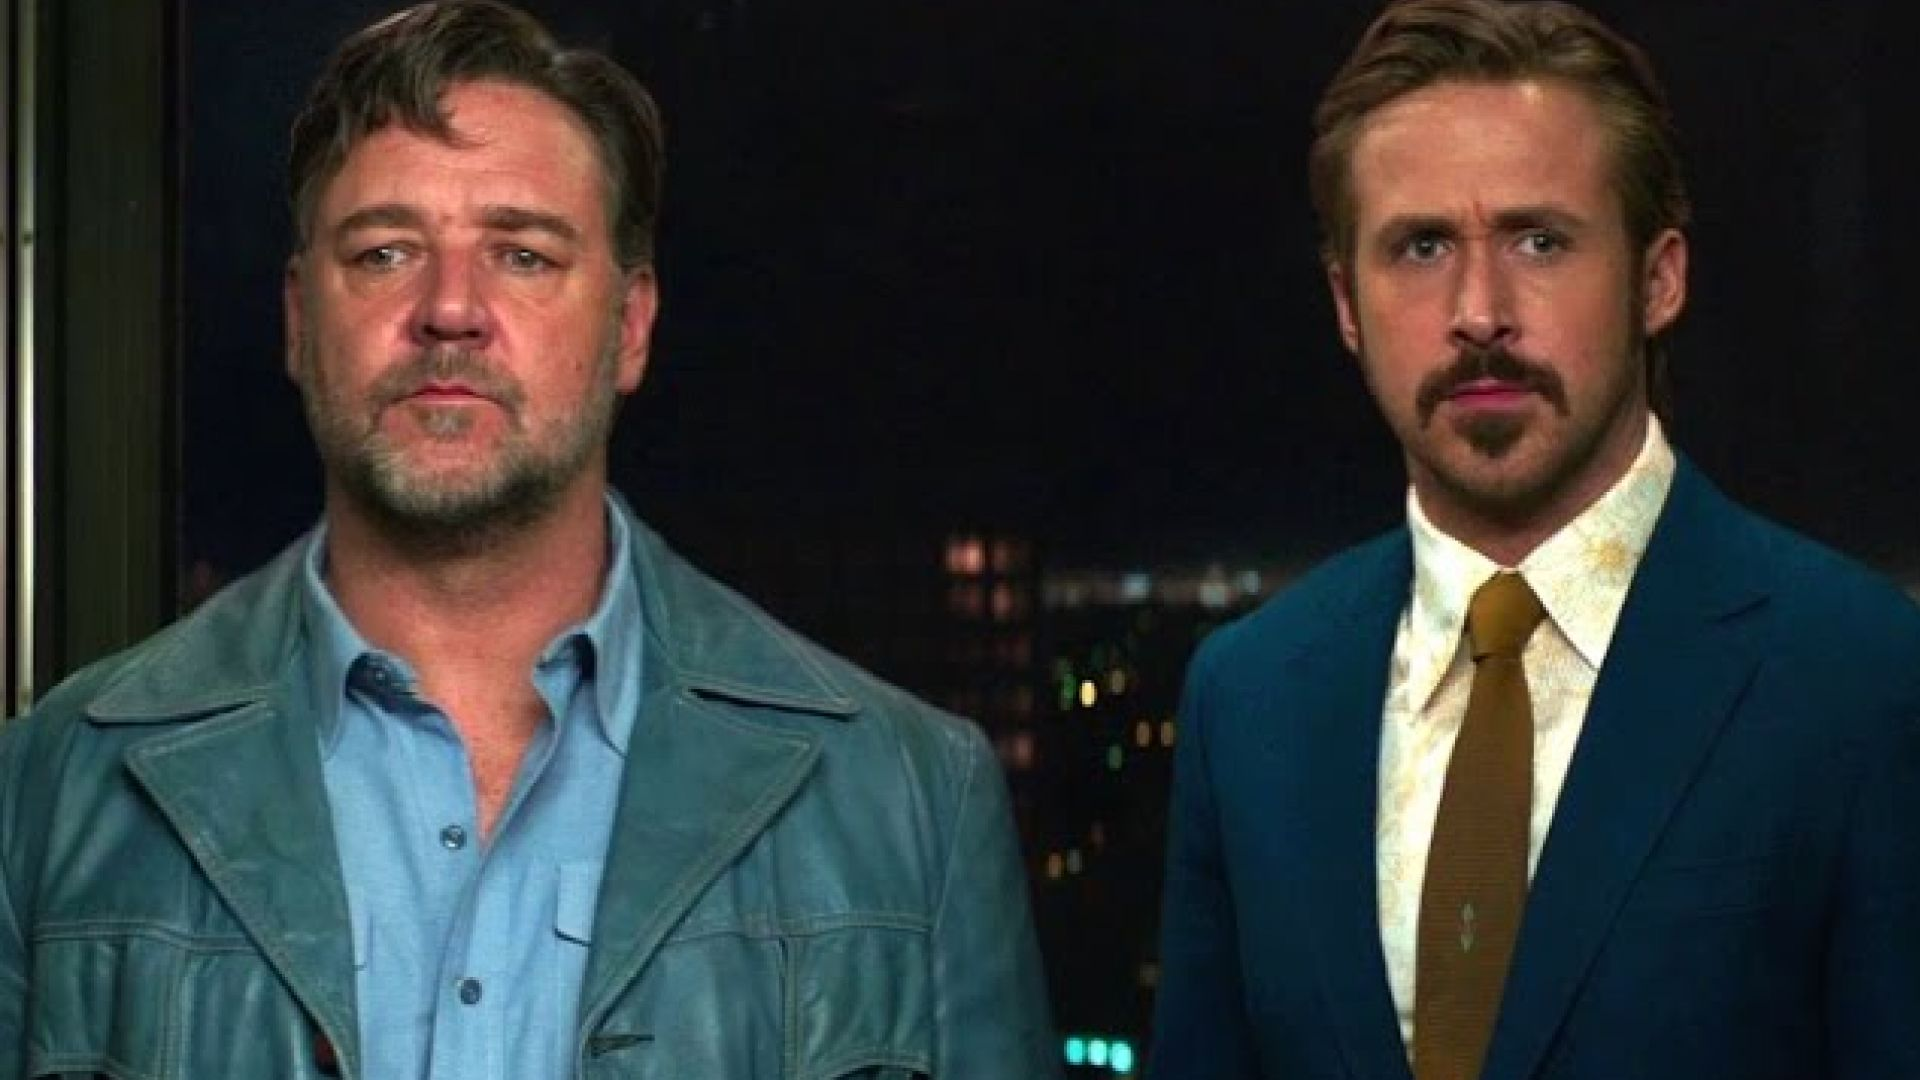 The joyous final trailer for Ryan Gosling and Russell Crowe